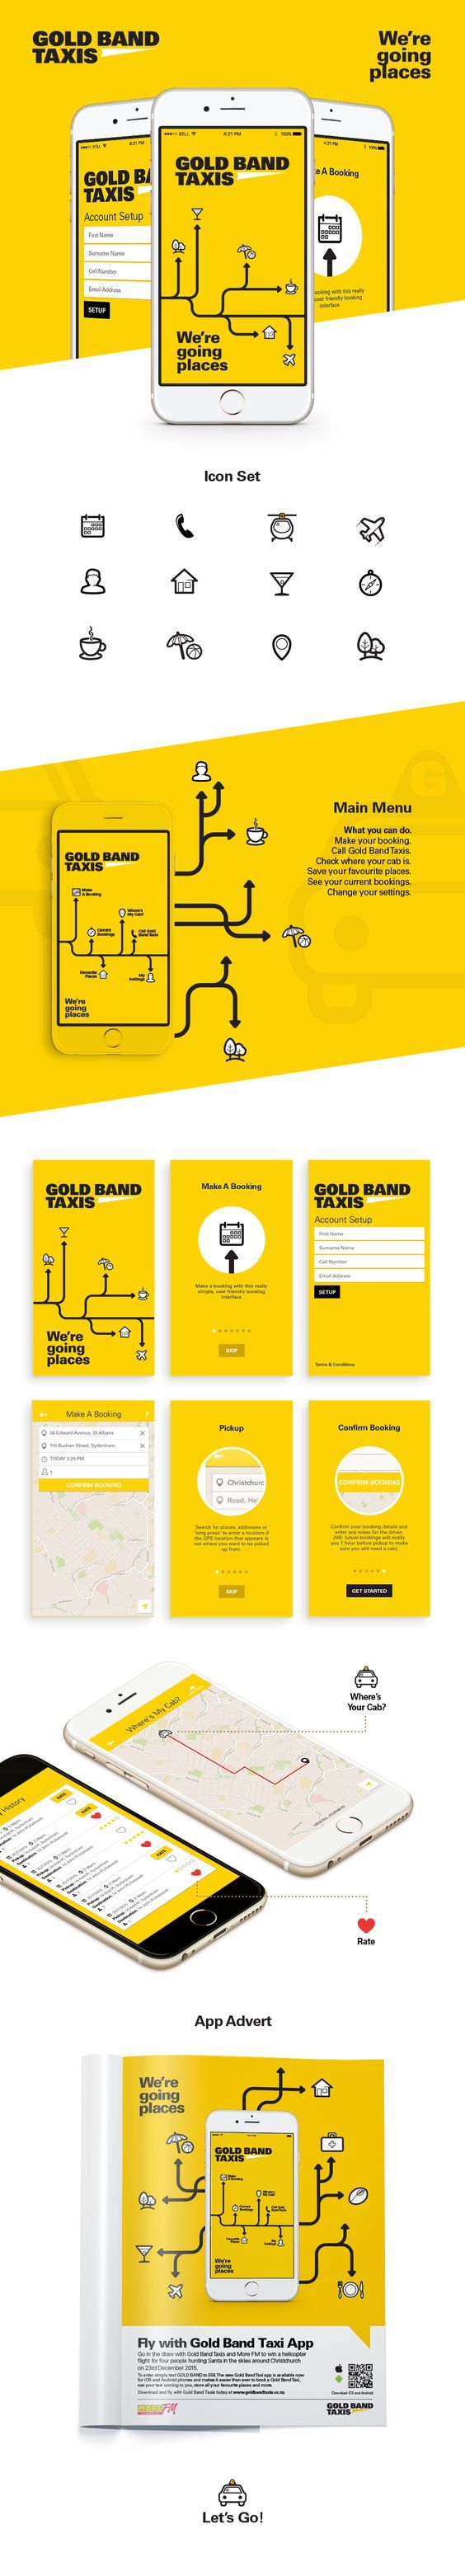 Gold Band Taxis iOs & Android App for booking taxis | Designed & developed by @studiopublica: